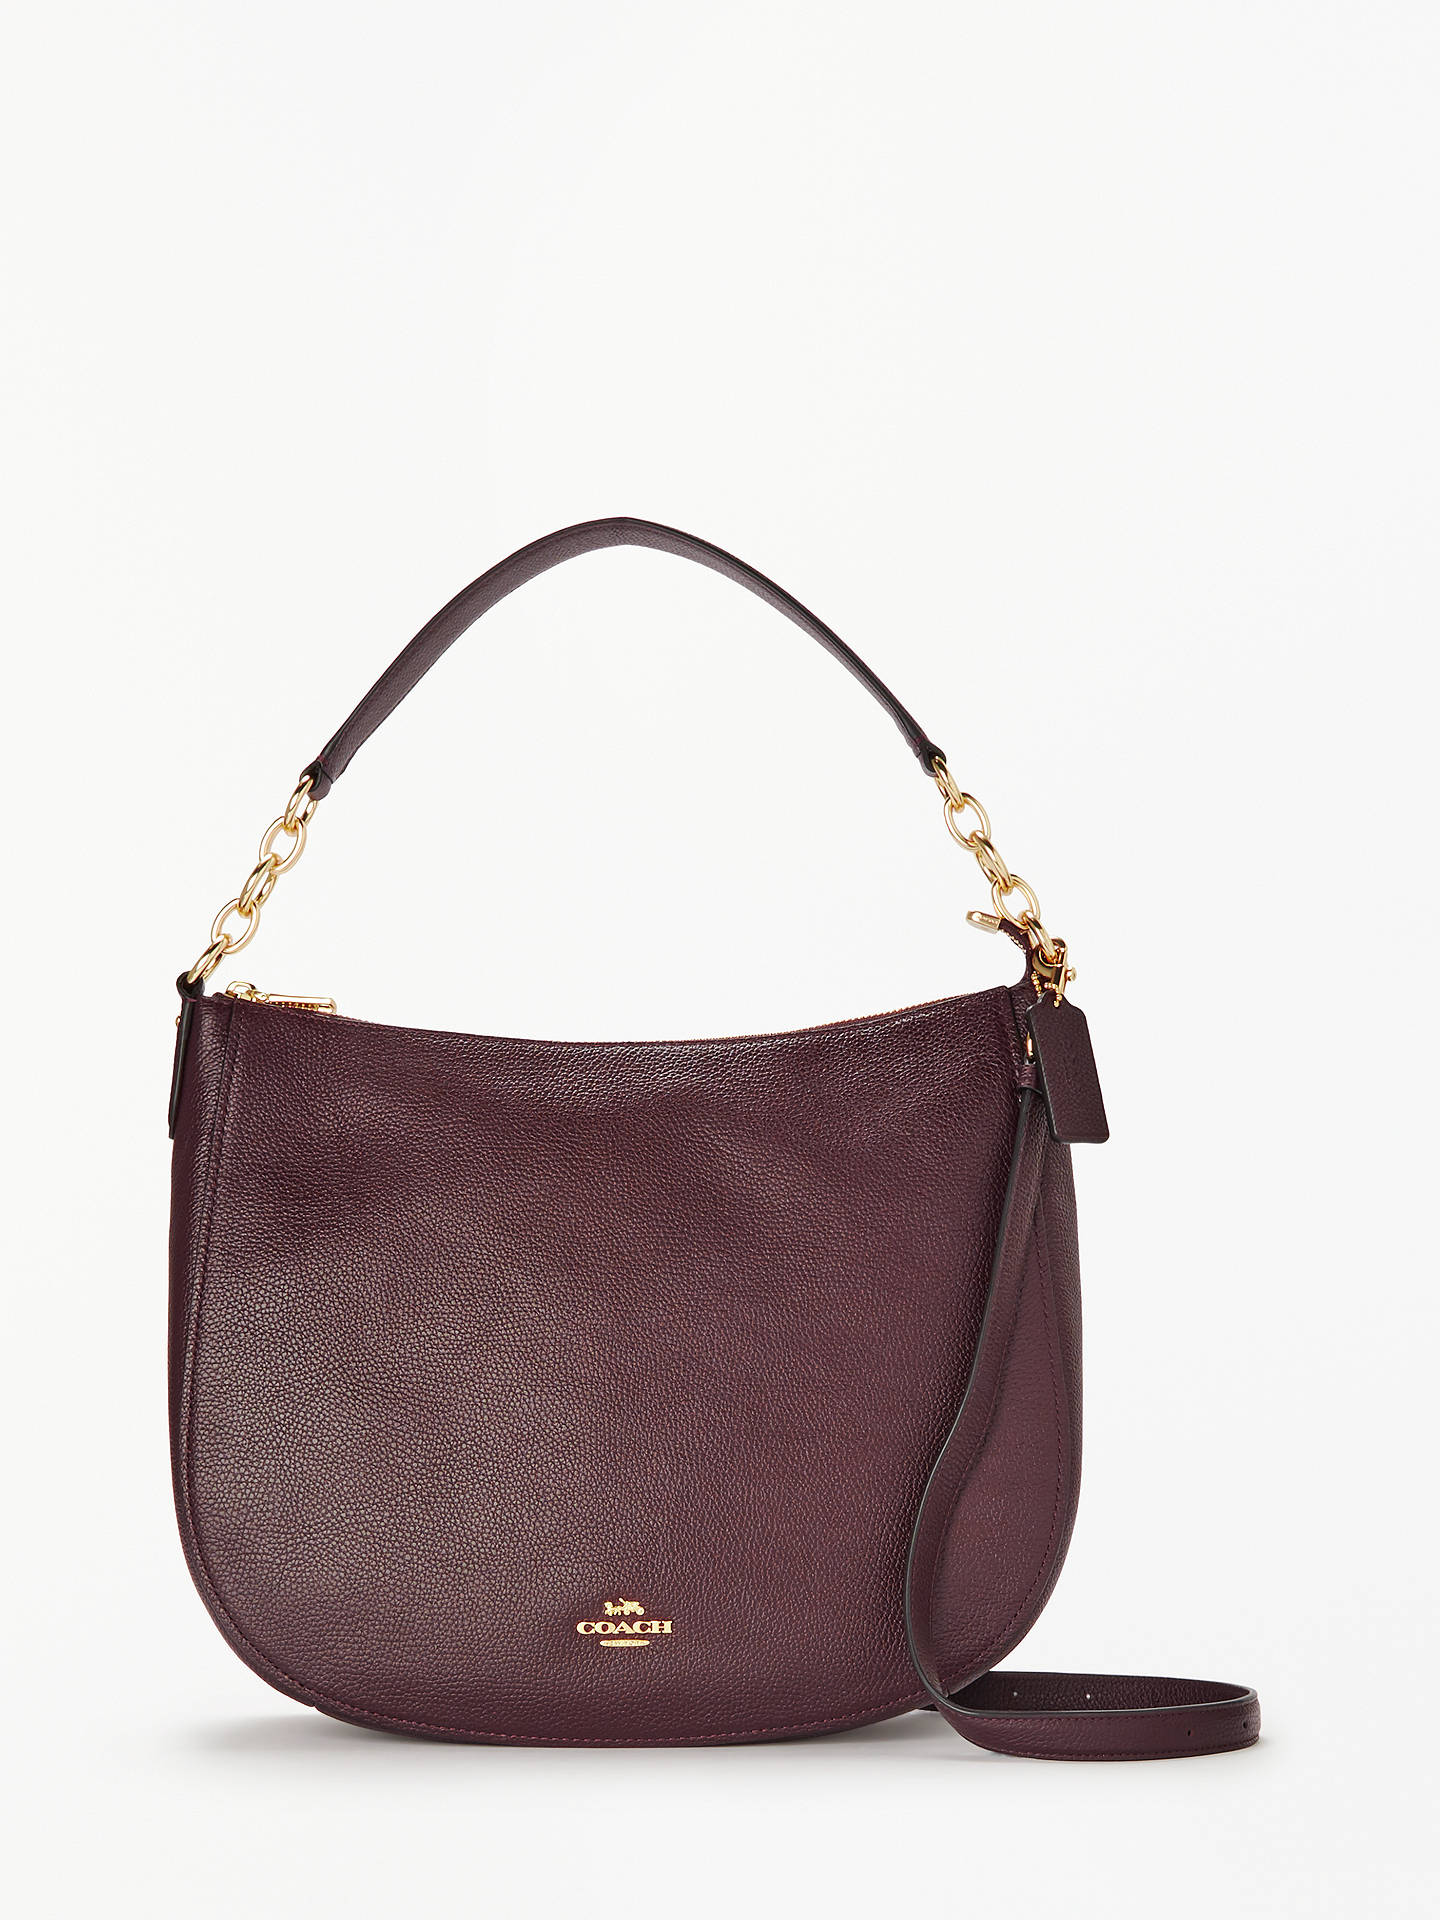 Coach Chelsea 32 Polished Leather Hobo Bag Oxblood Online At Johnlewis